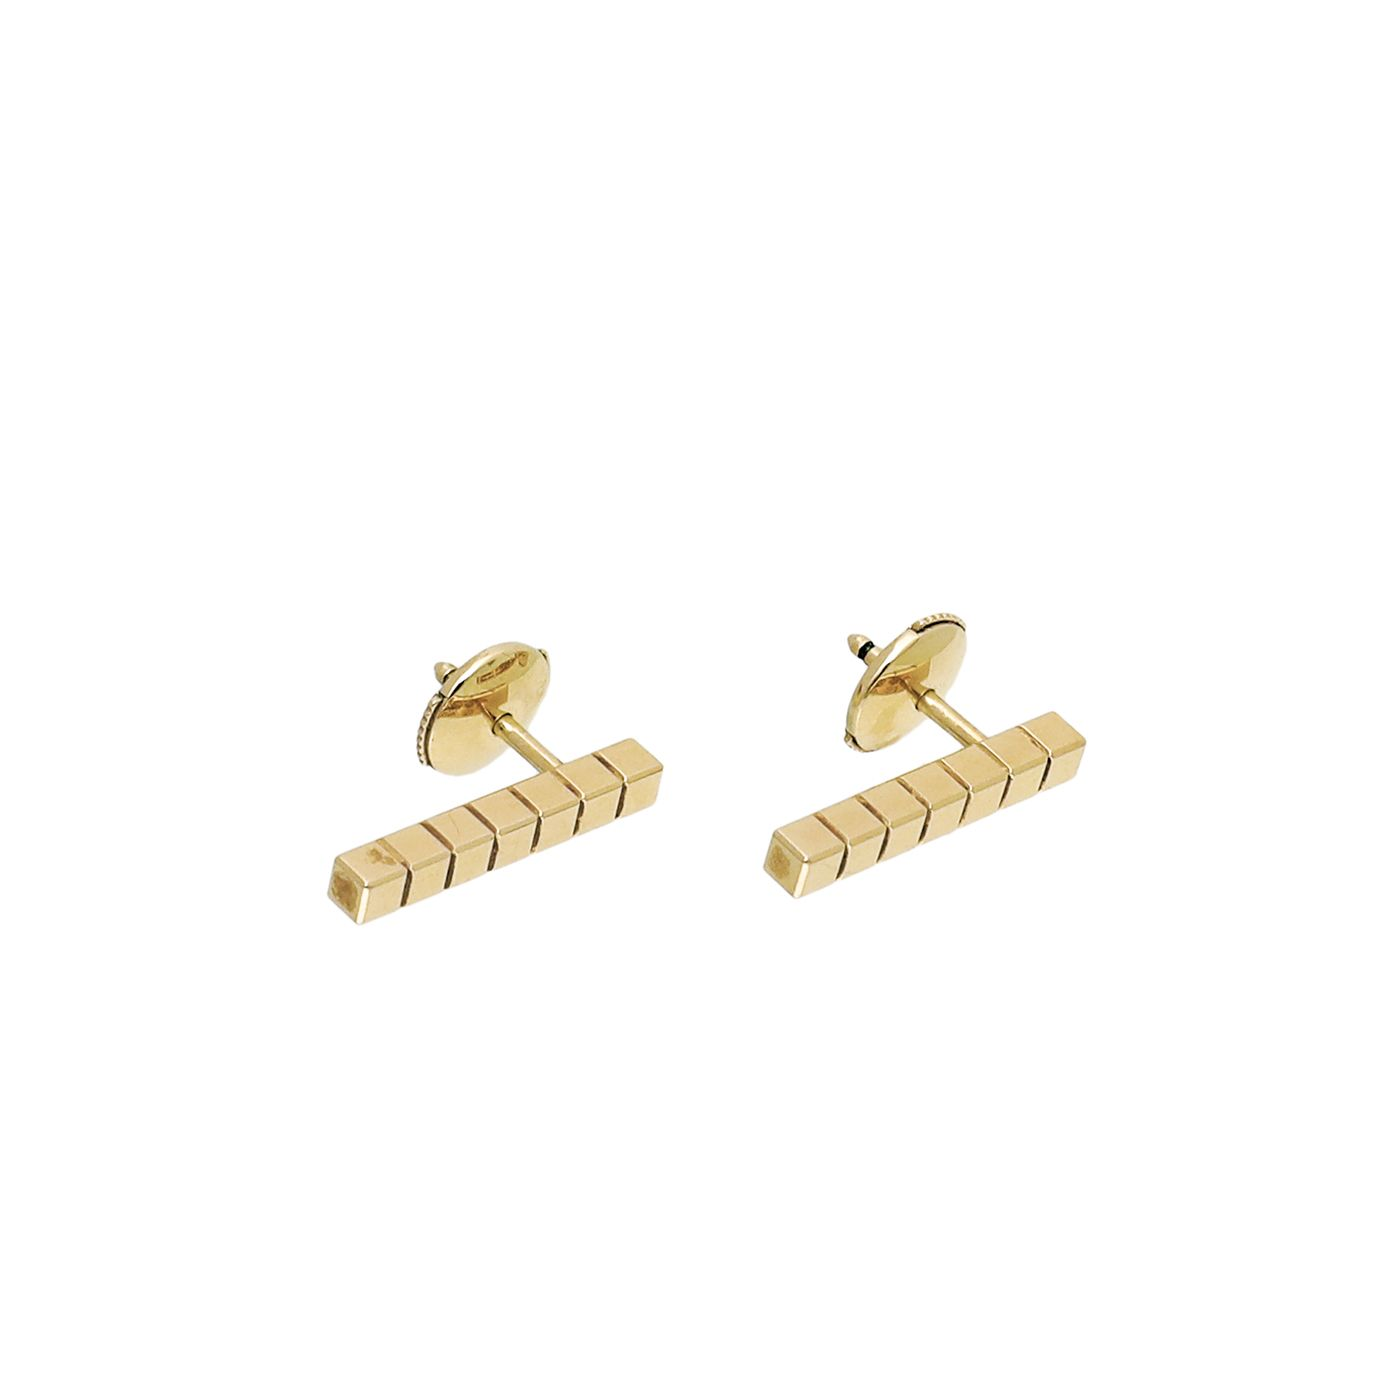 Chopard 18K Yellow Gold Ice Cube Pure Fairmined Earrings